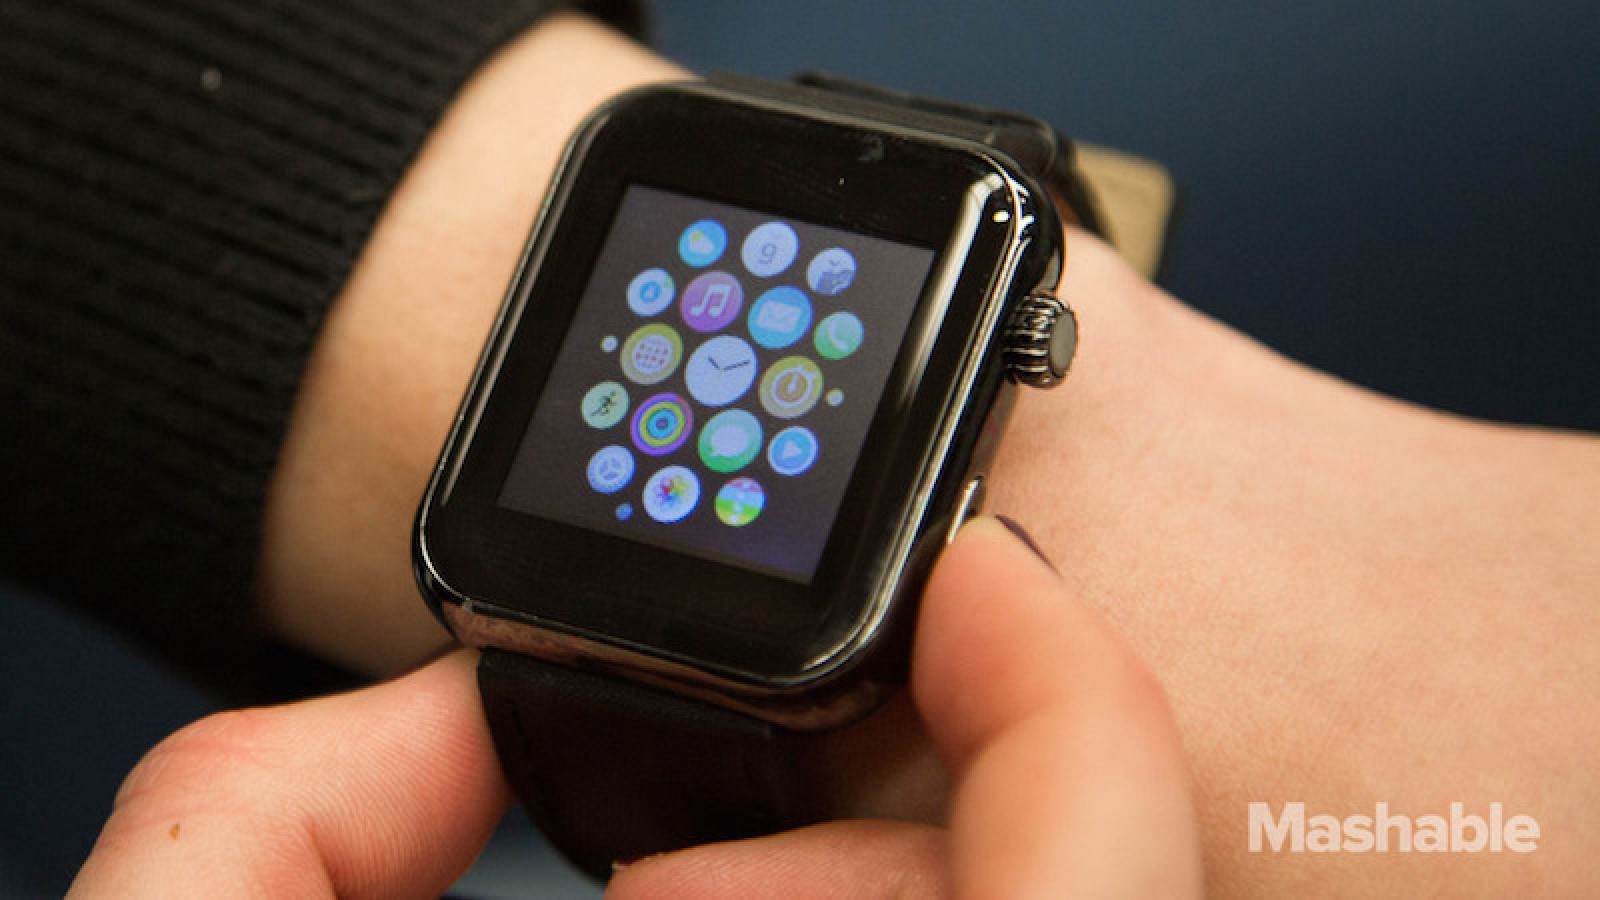 Chinese Company Hyperdon Sold Fake Apple Watches At CES